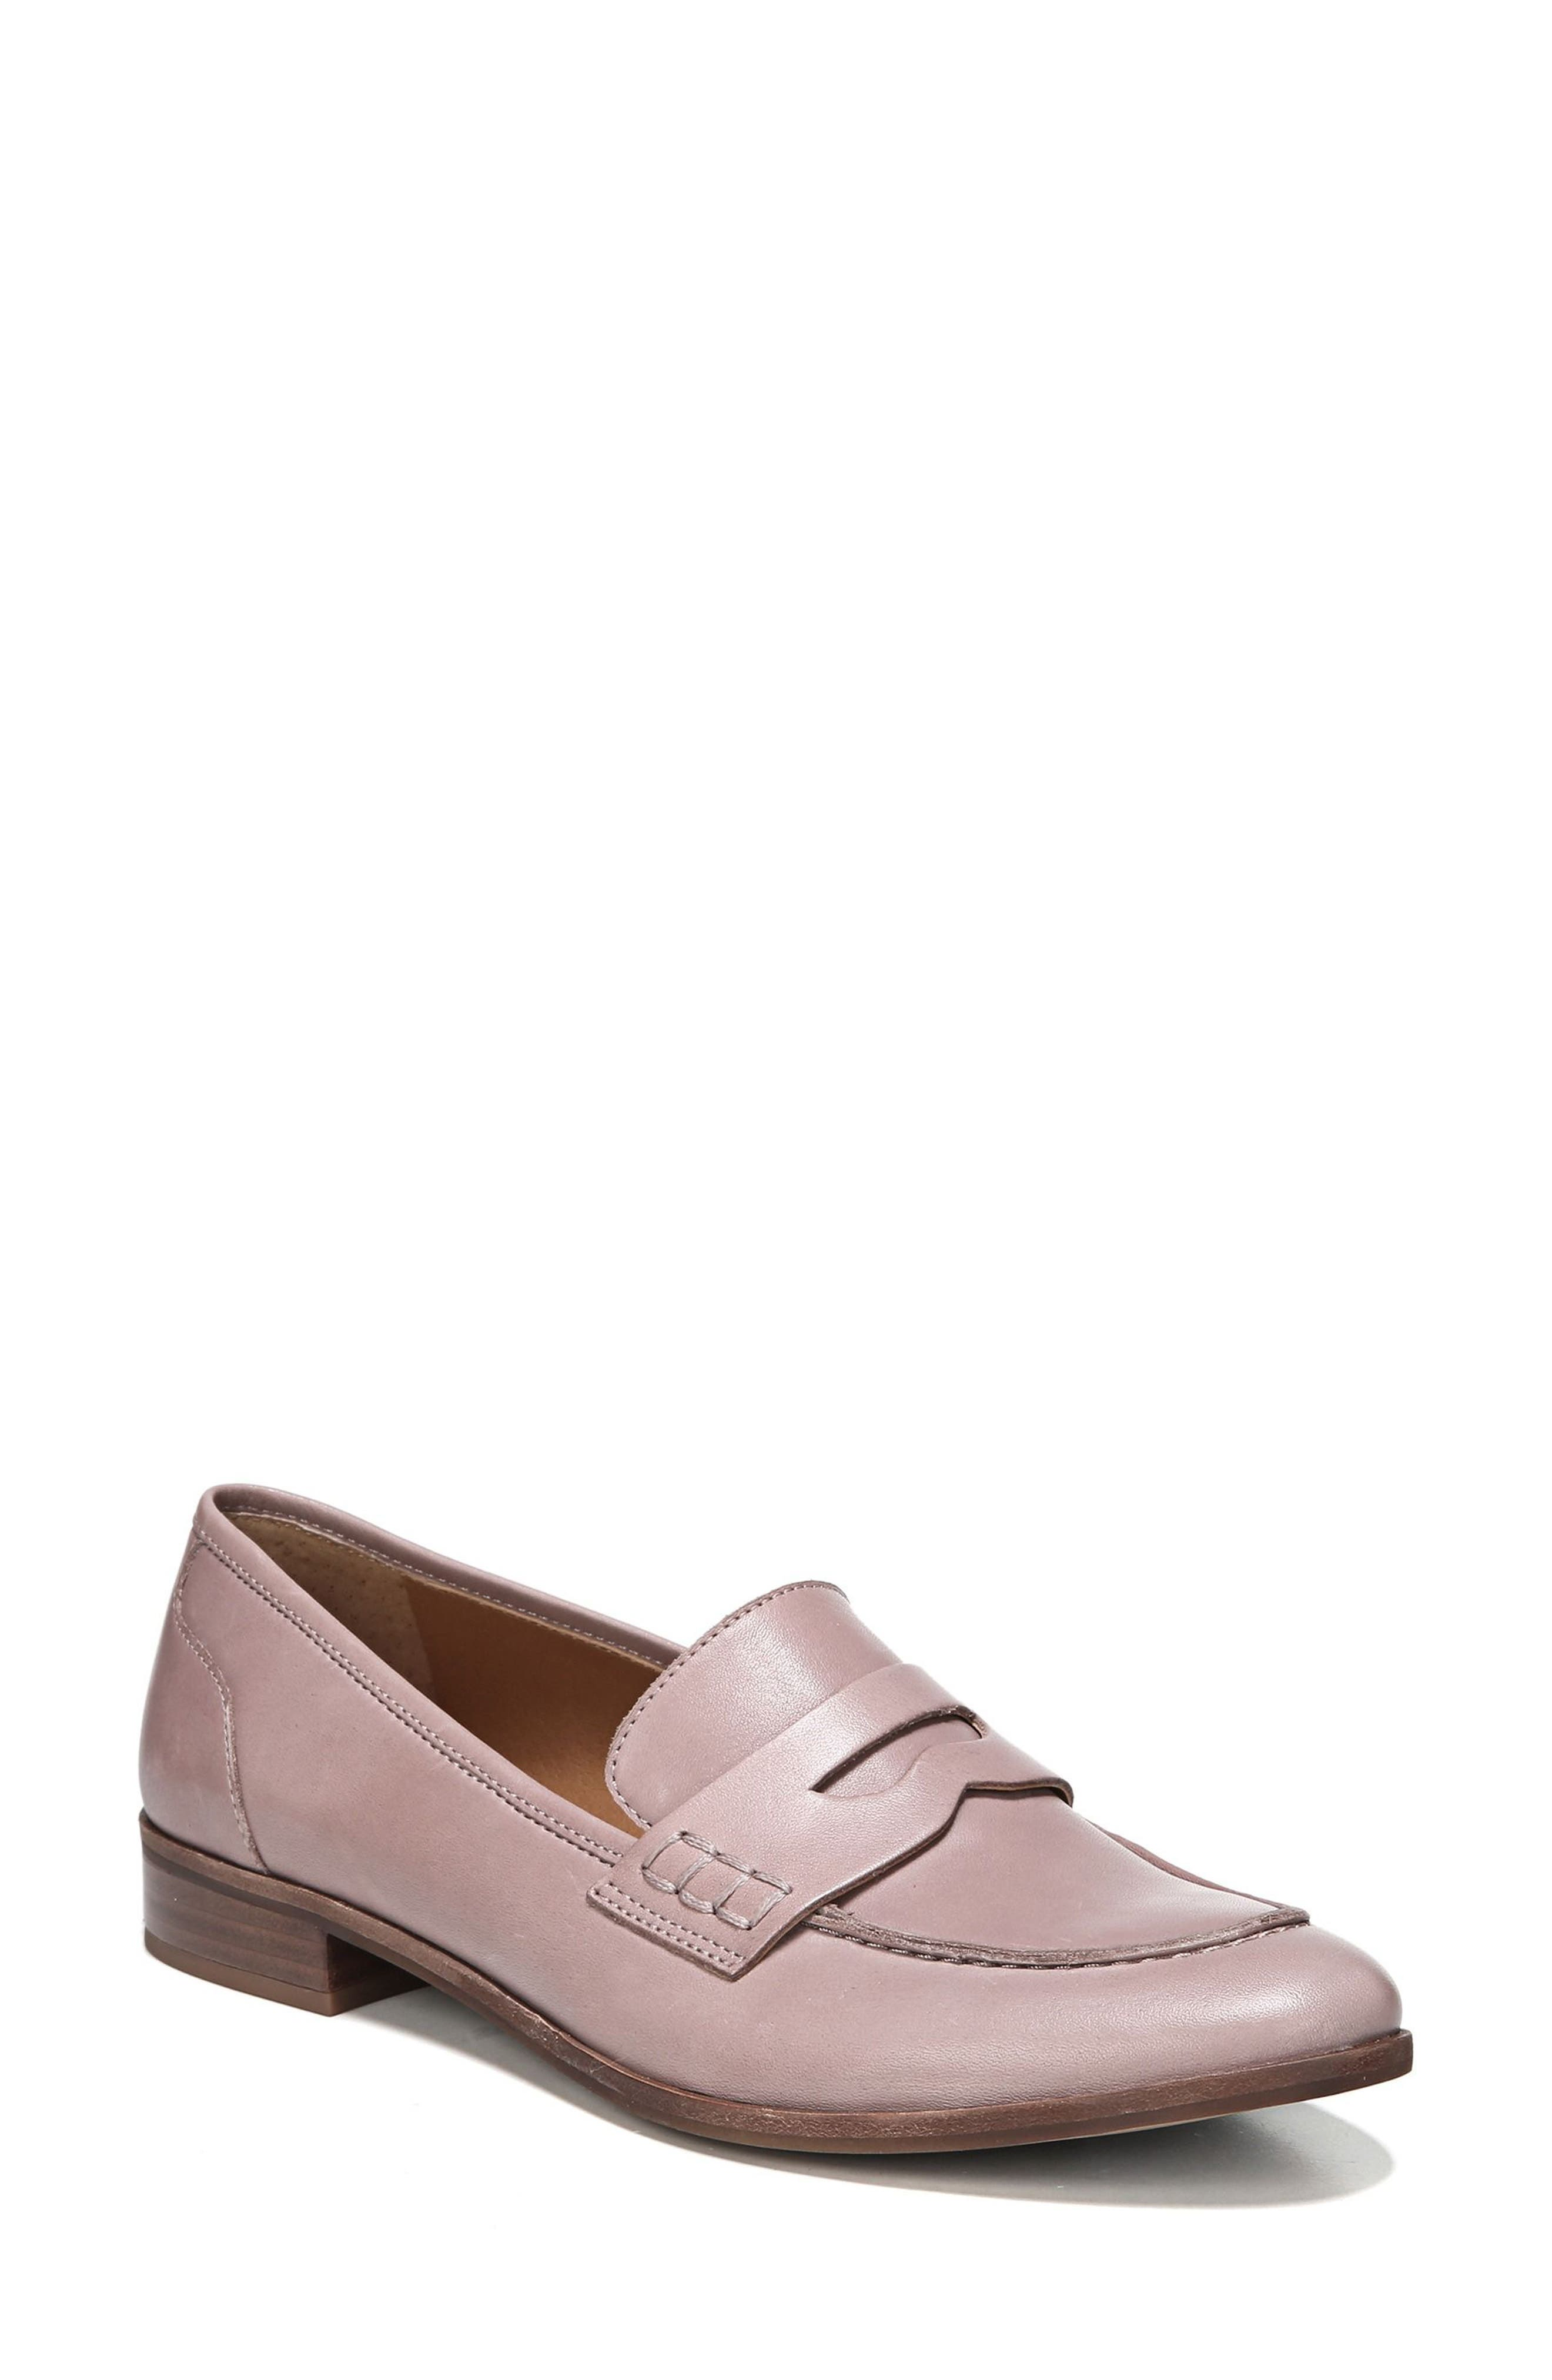 'Jolette' Penny Loafer,                             Main thumbnail 8, color,